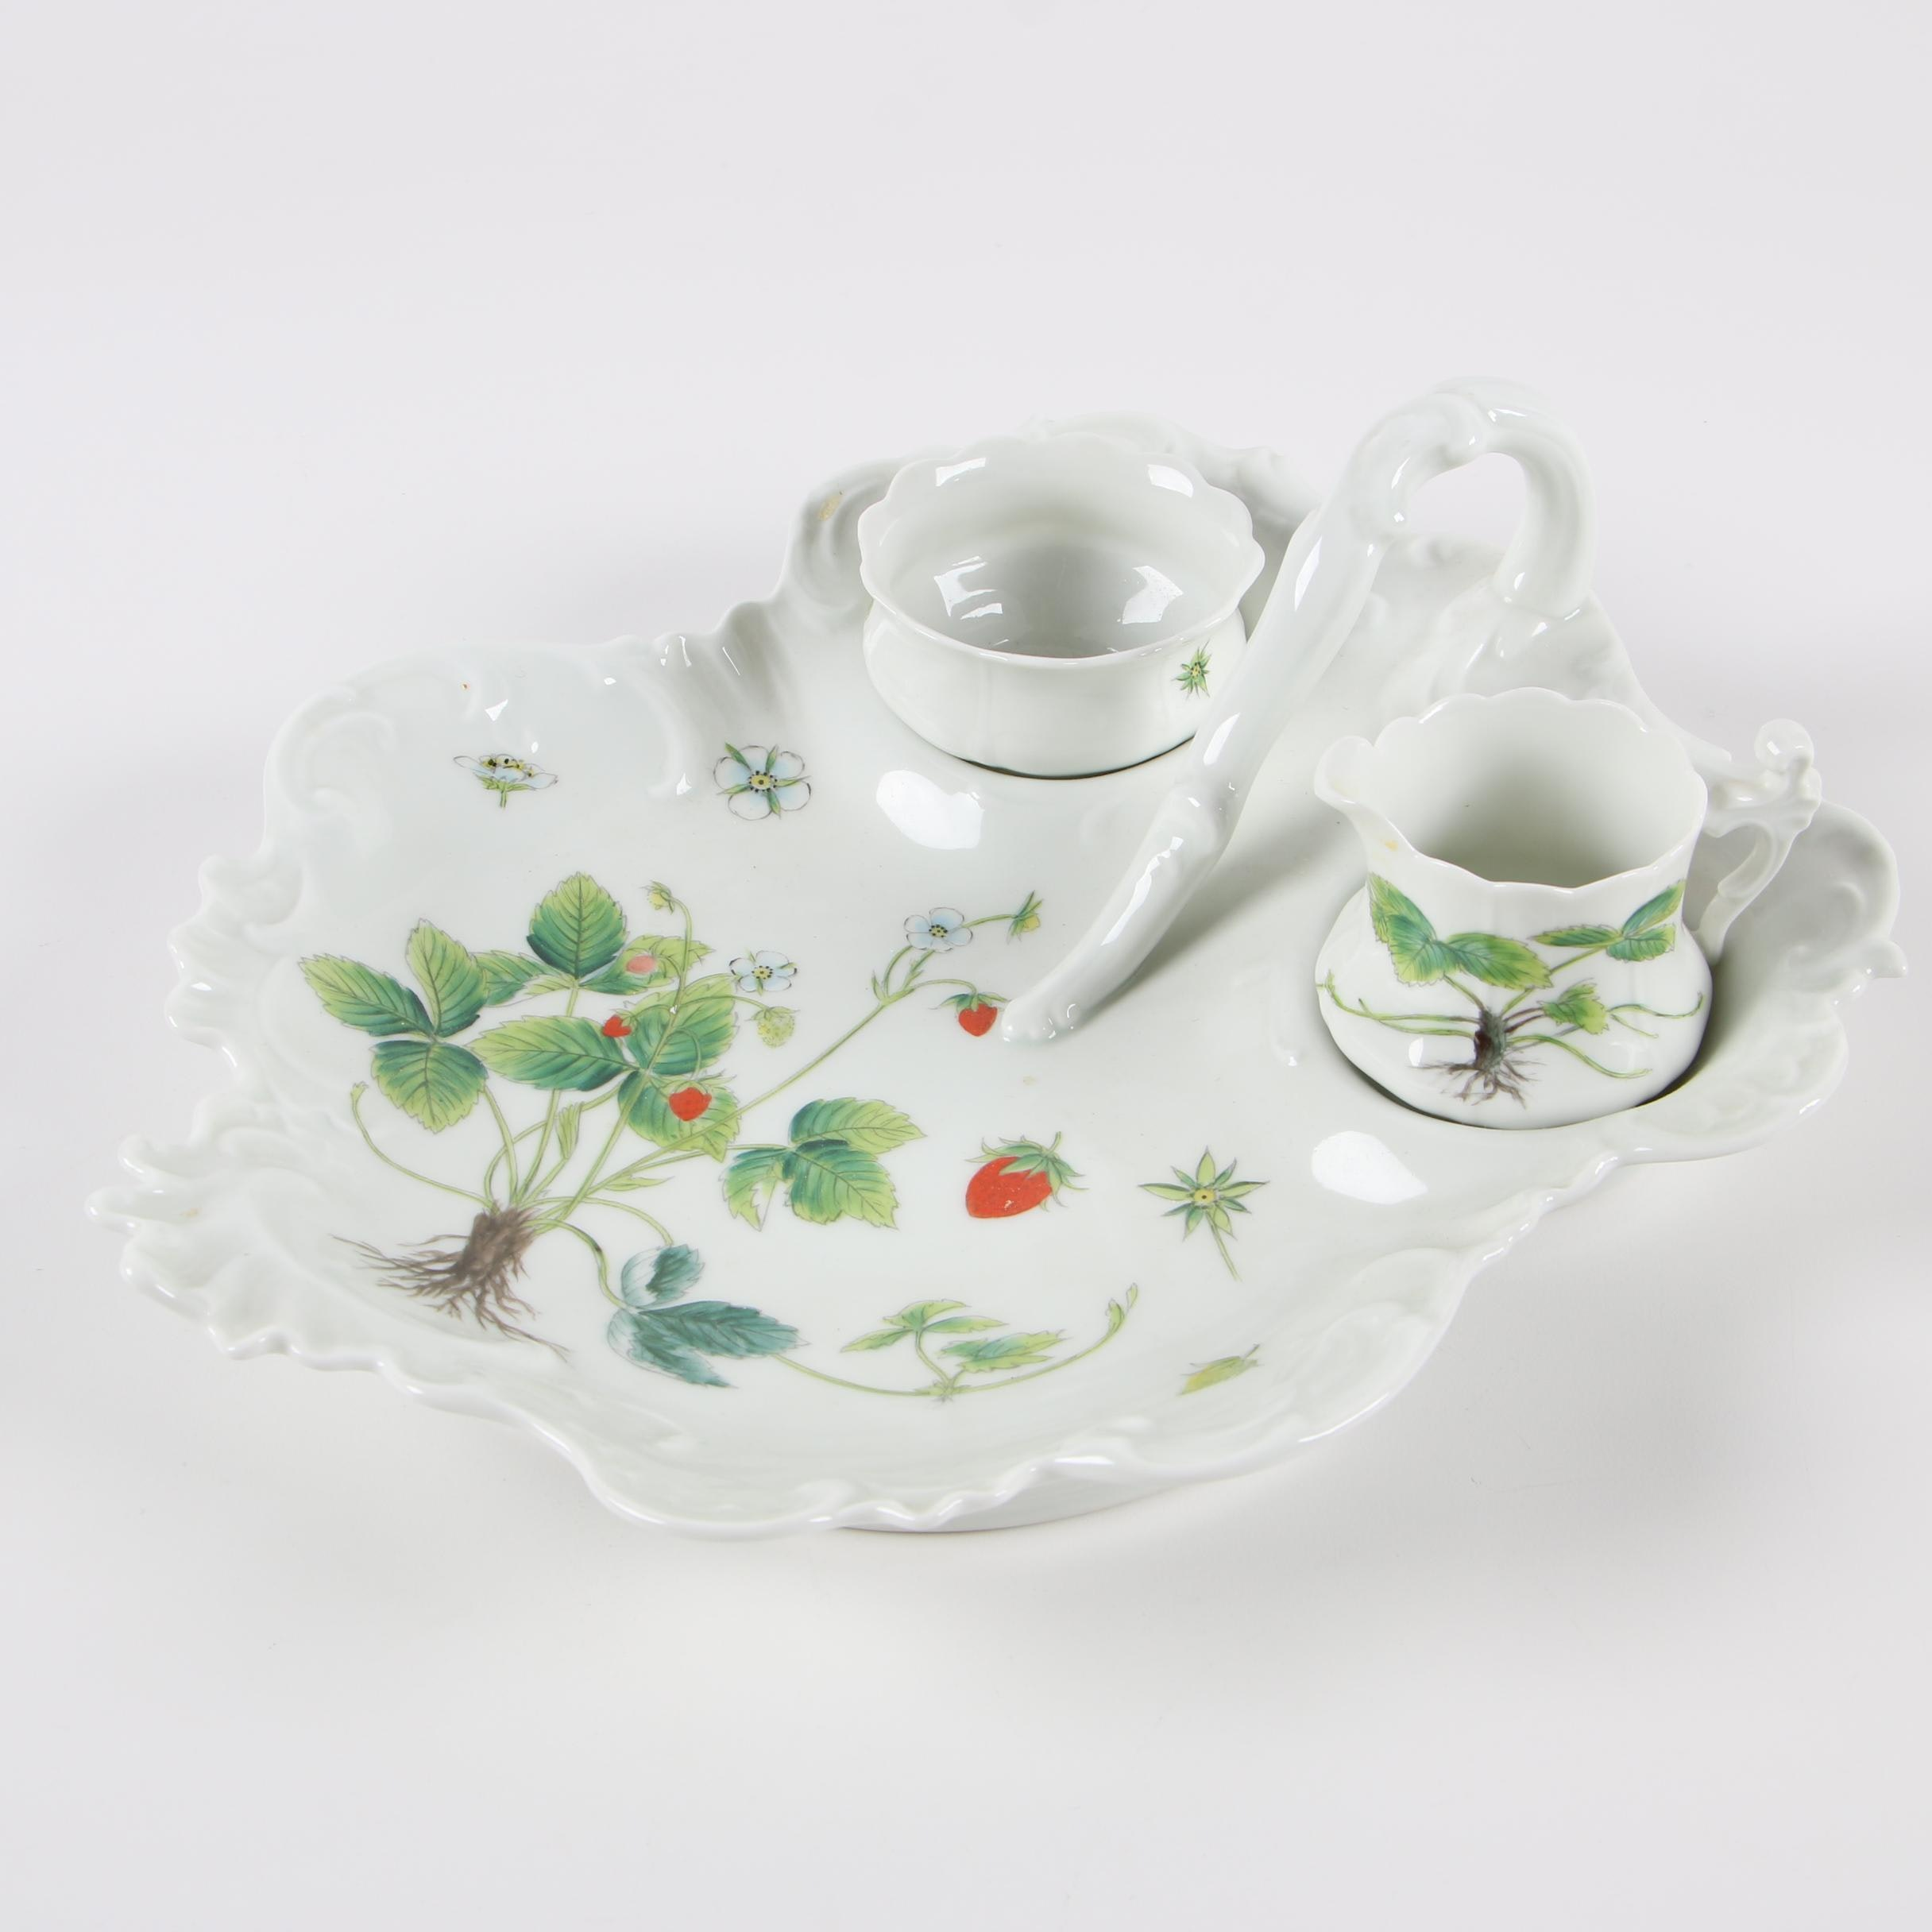 Charmart Limoges Porcelain Nappy with Creamer and Open Sugar